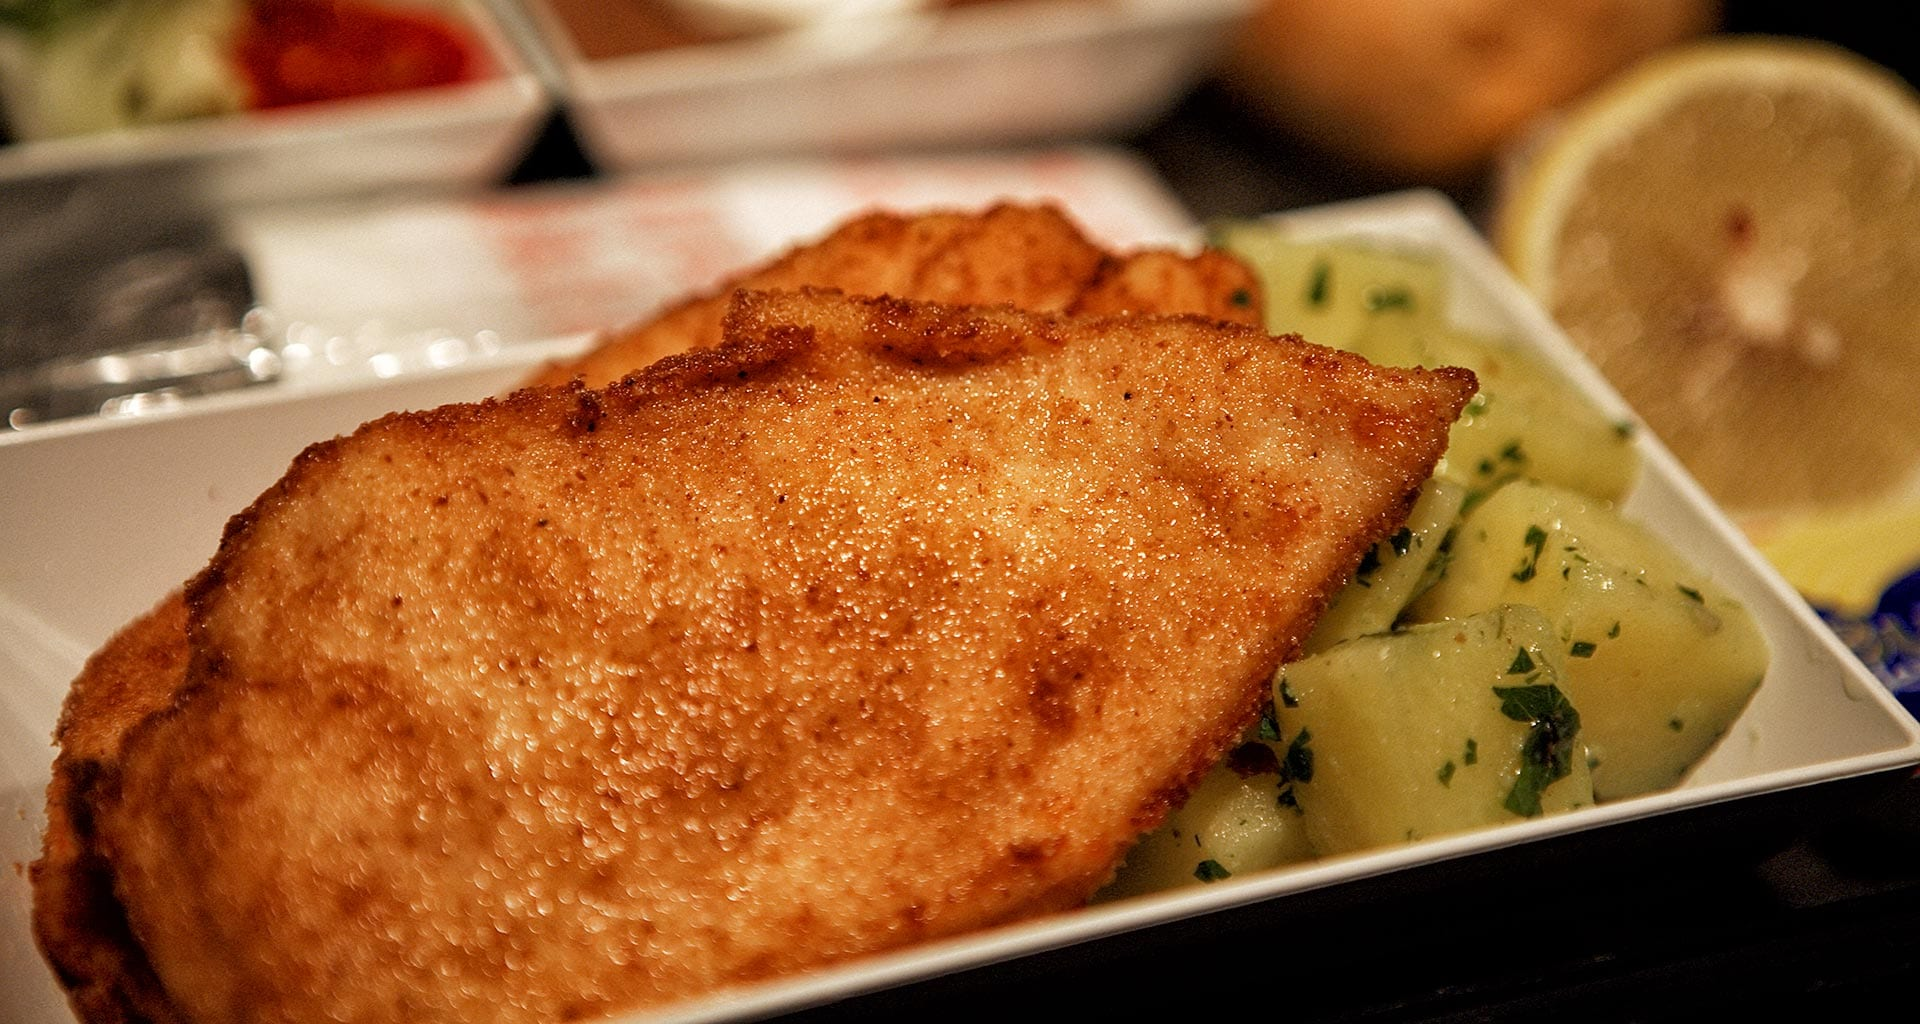 Chicken schnitzel economy class pre order meal Pegasus airlines